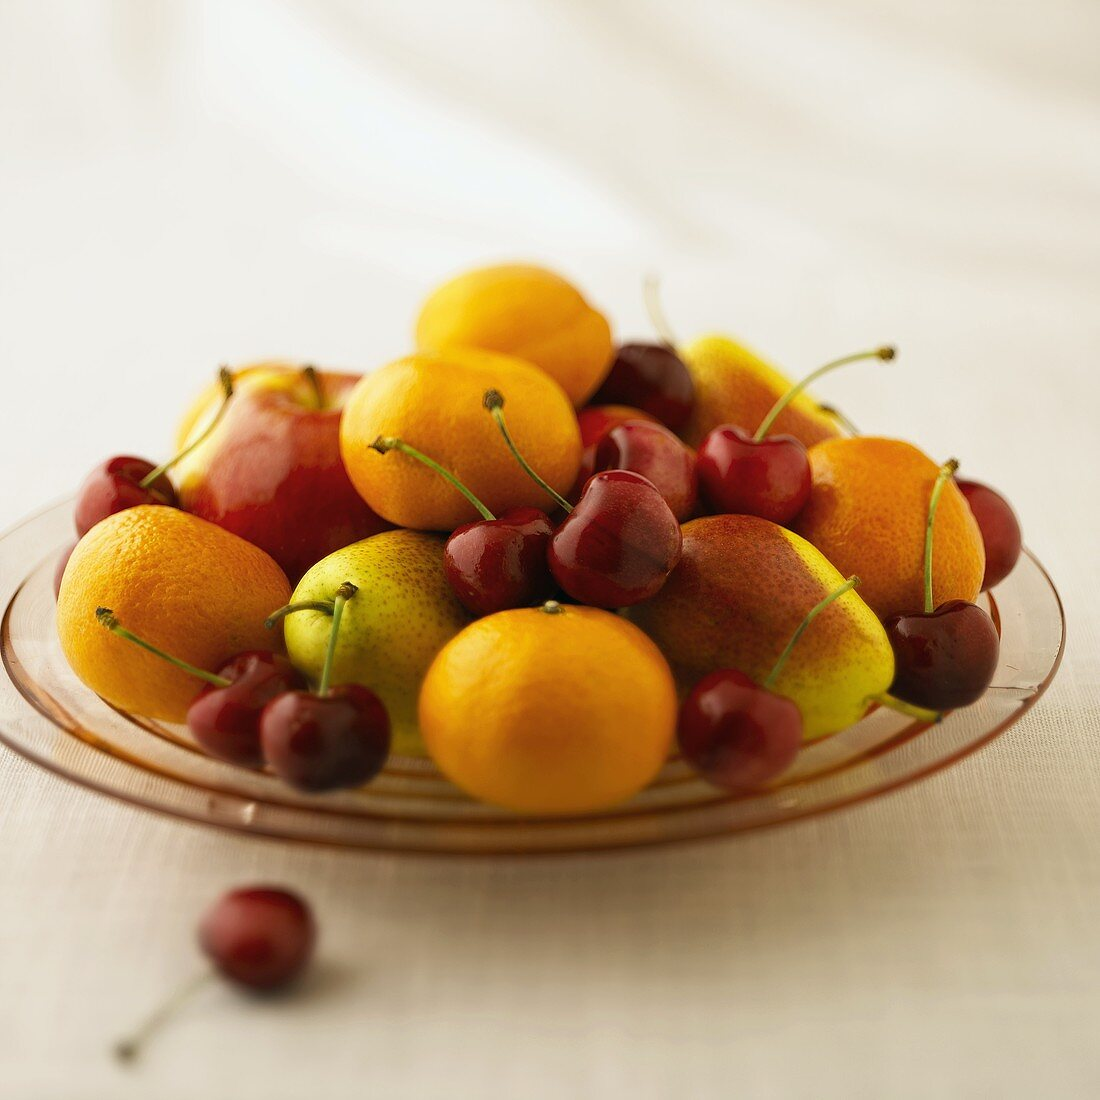 Clementines, Forelle Pears and Cherries on a Pink Glass Plate